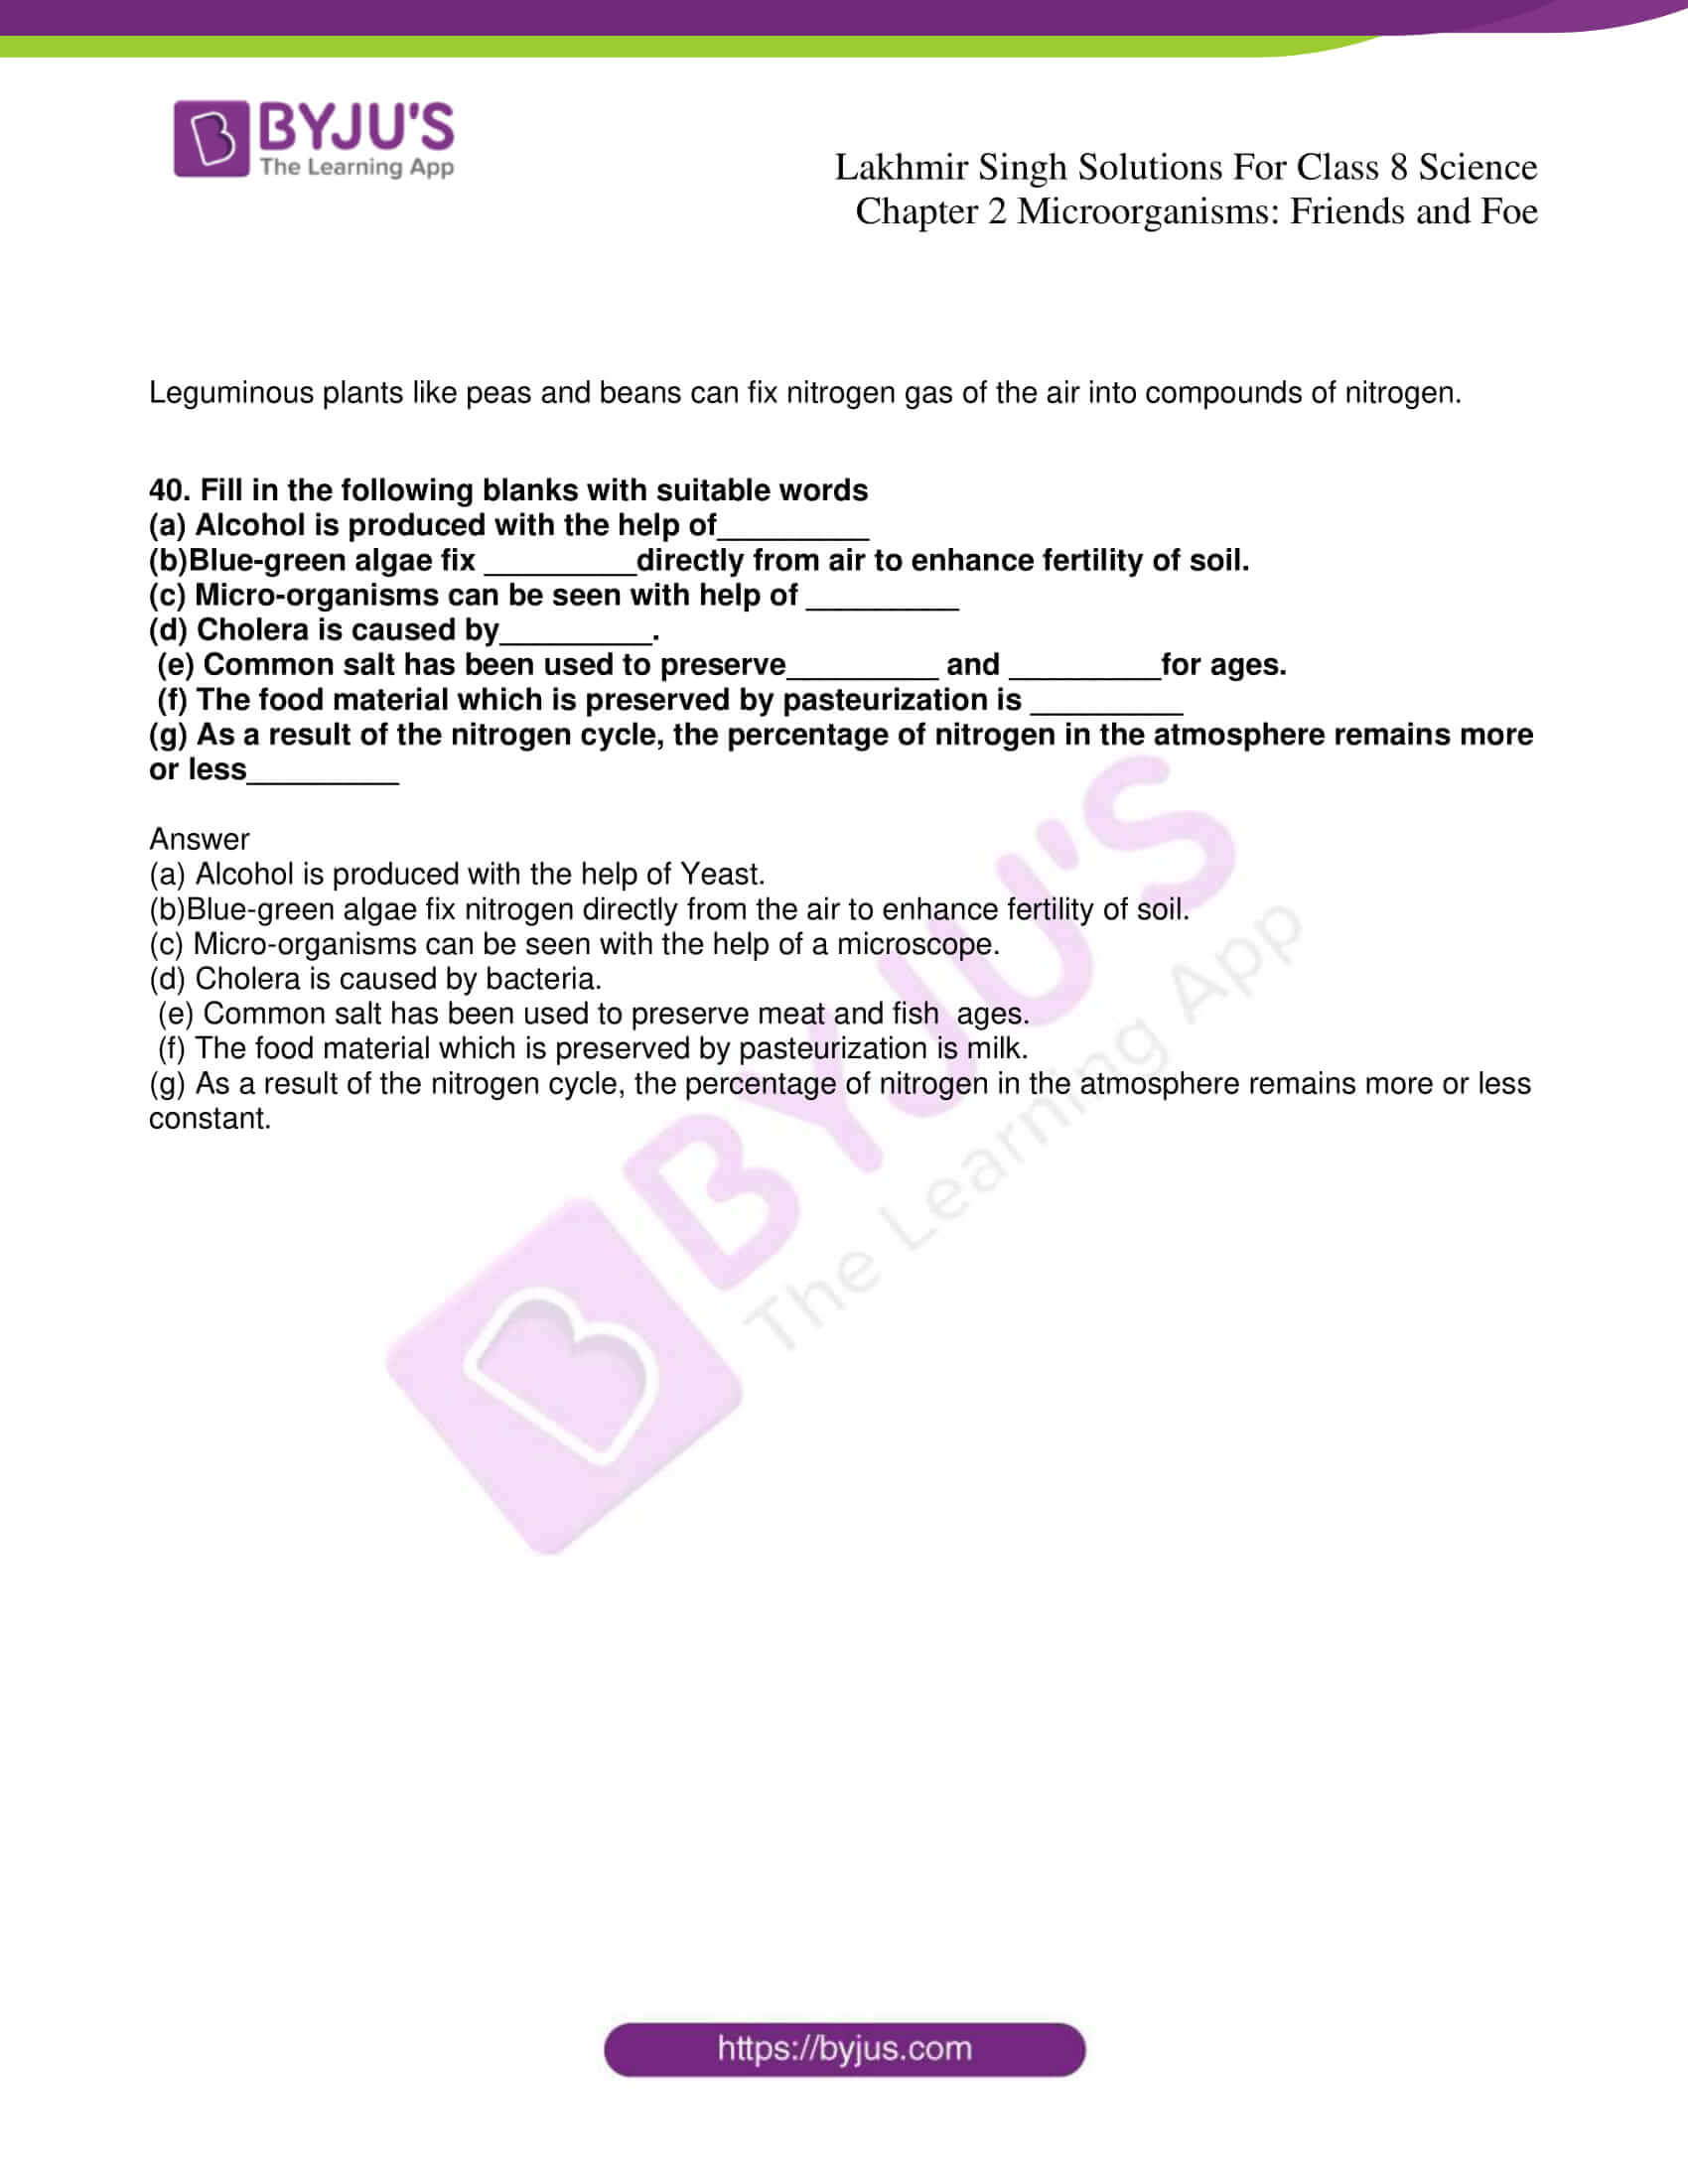 lakhmir singh solutions for class 8 science chapter 2 7